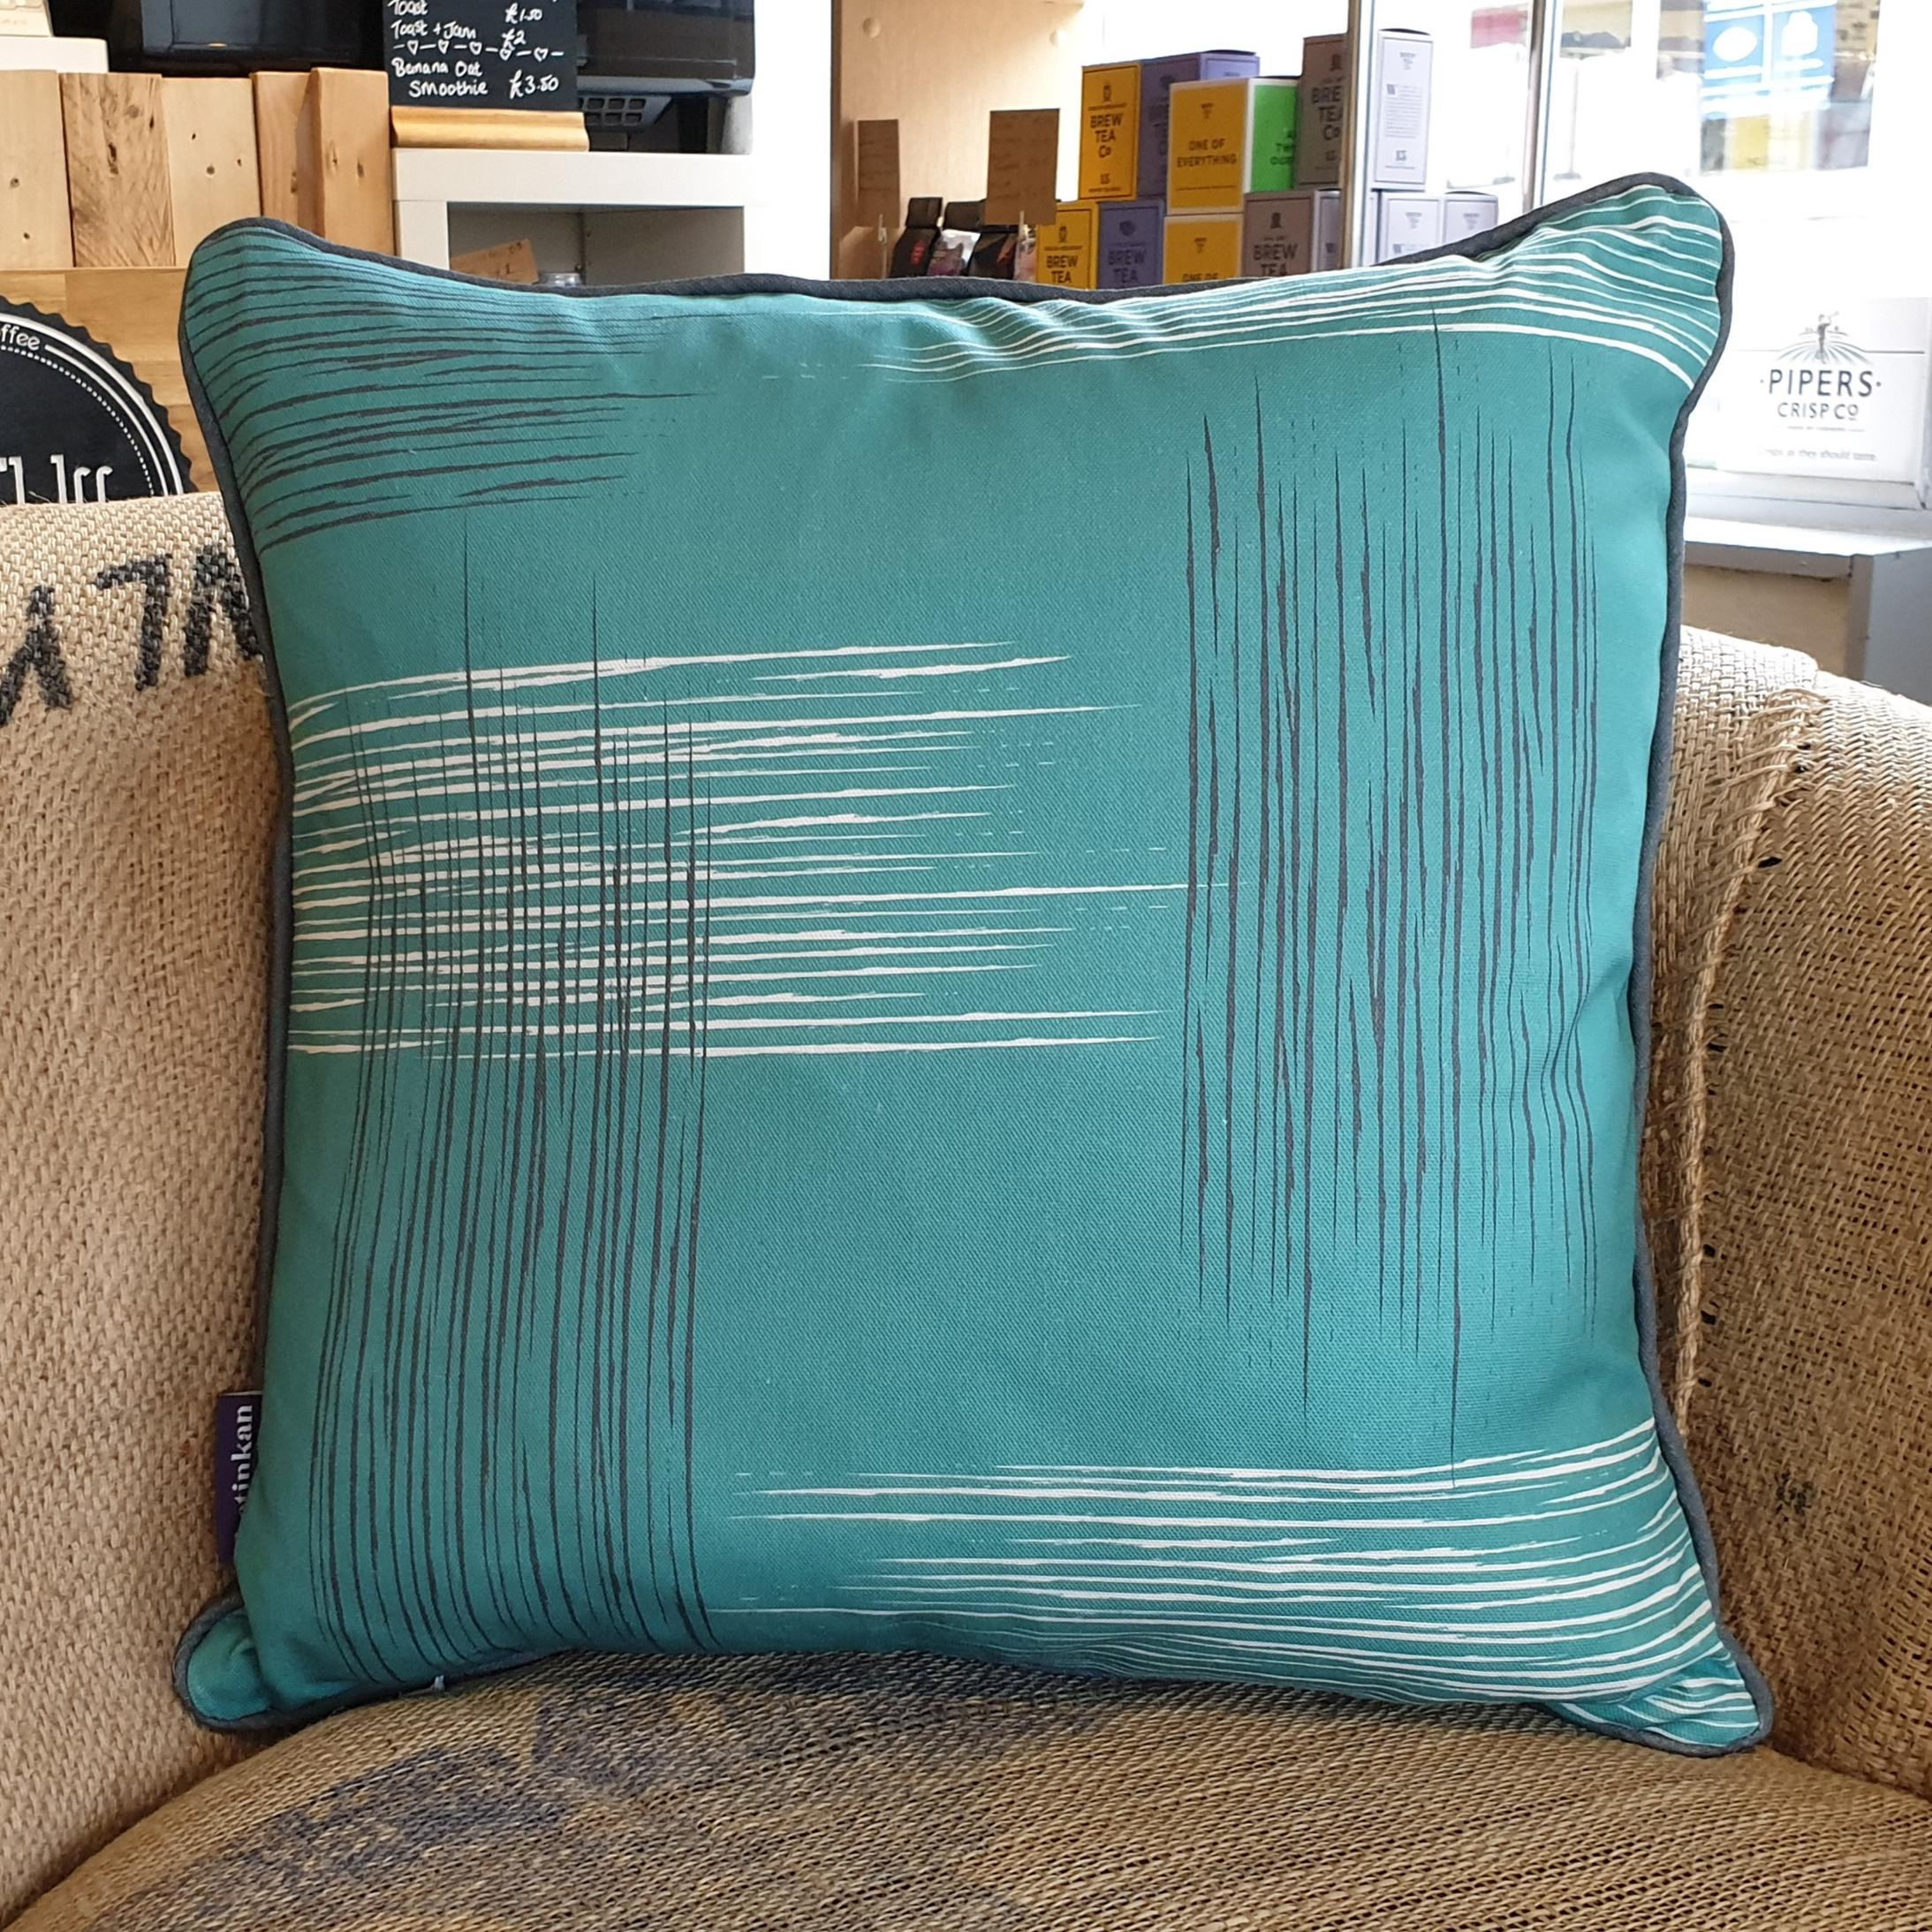 Double-sided aqua teal 45cm square retro themed cushion with artistic grey and white shards and grey handcrafted piping designed by thetinkan. Available with an optional luxury cushion inner pad. VIEW PRODUCT >>